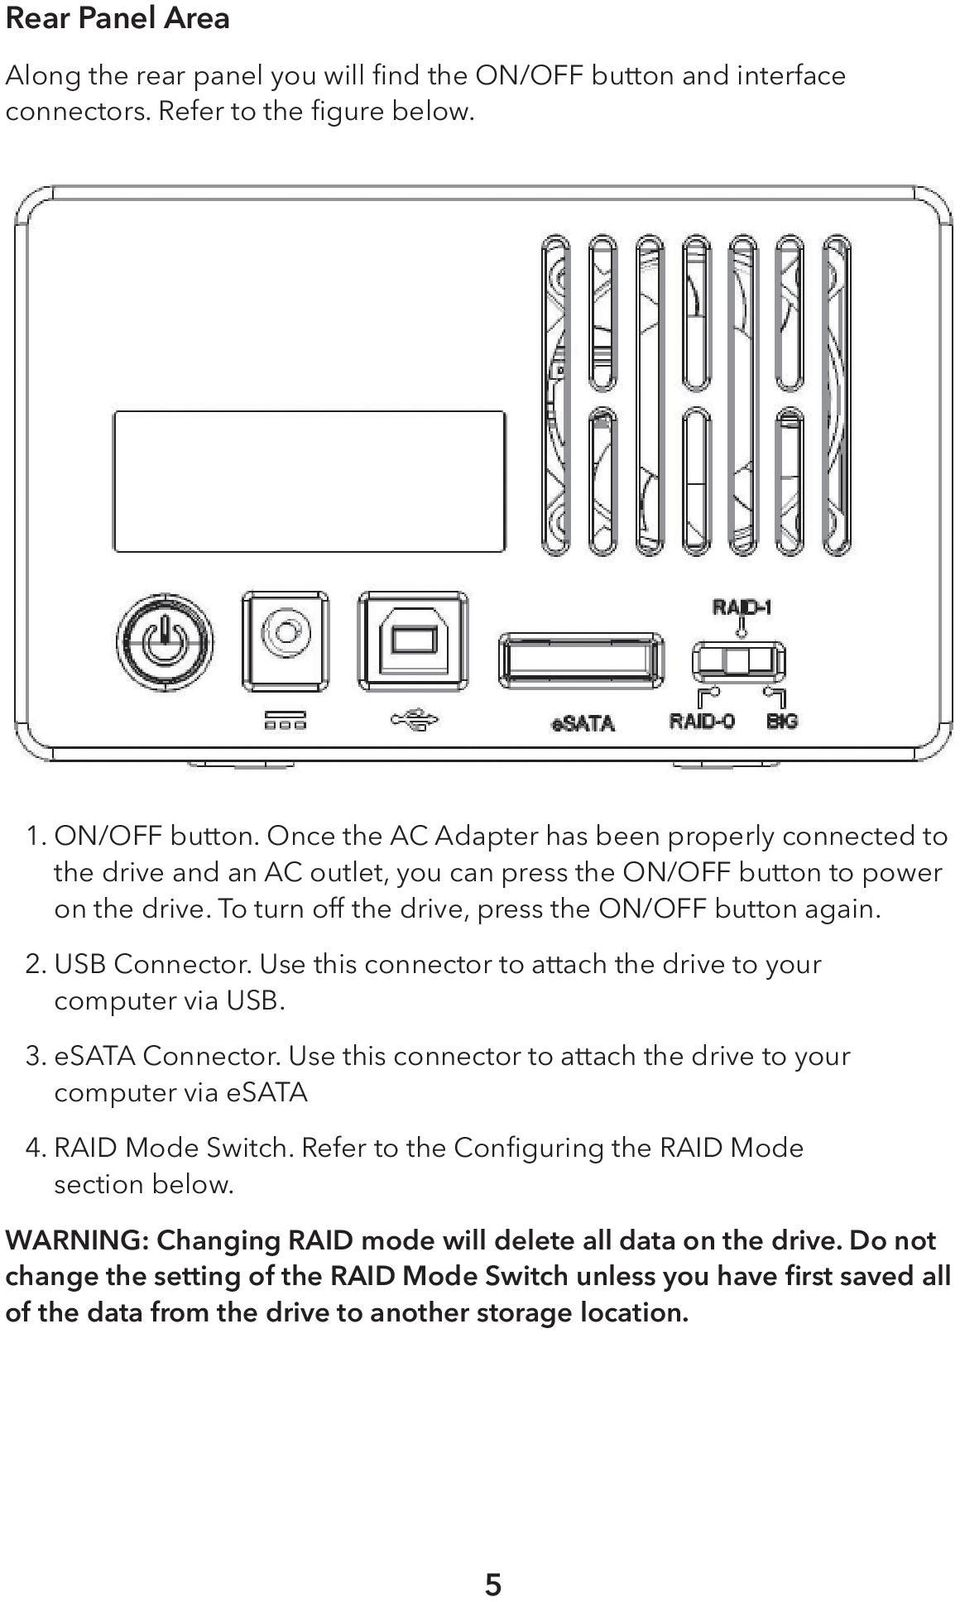 Once the AC Adapter has been properly connected to the drive and an AC outlet, you can press the ON/OFF button to power on the drive. To turn off the drive, press the ON/OFF button again. 2.